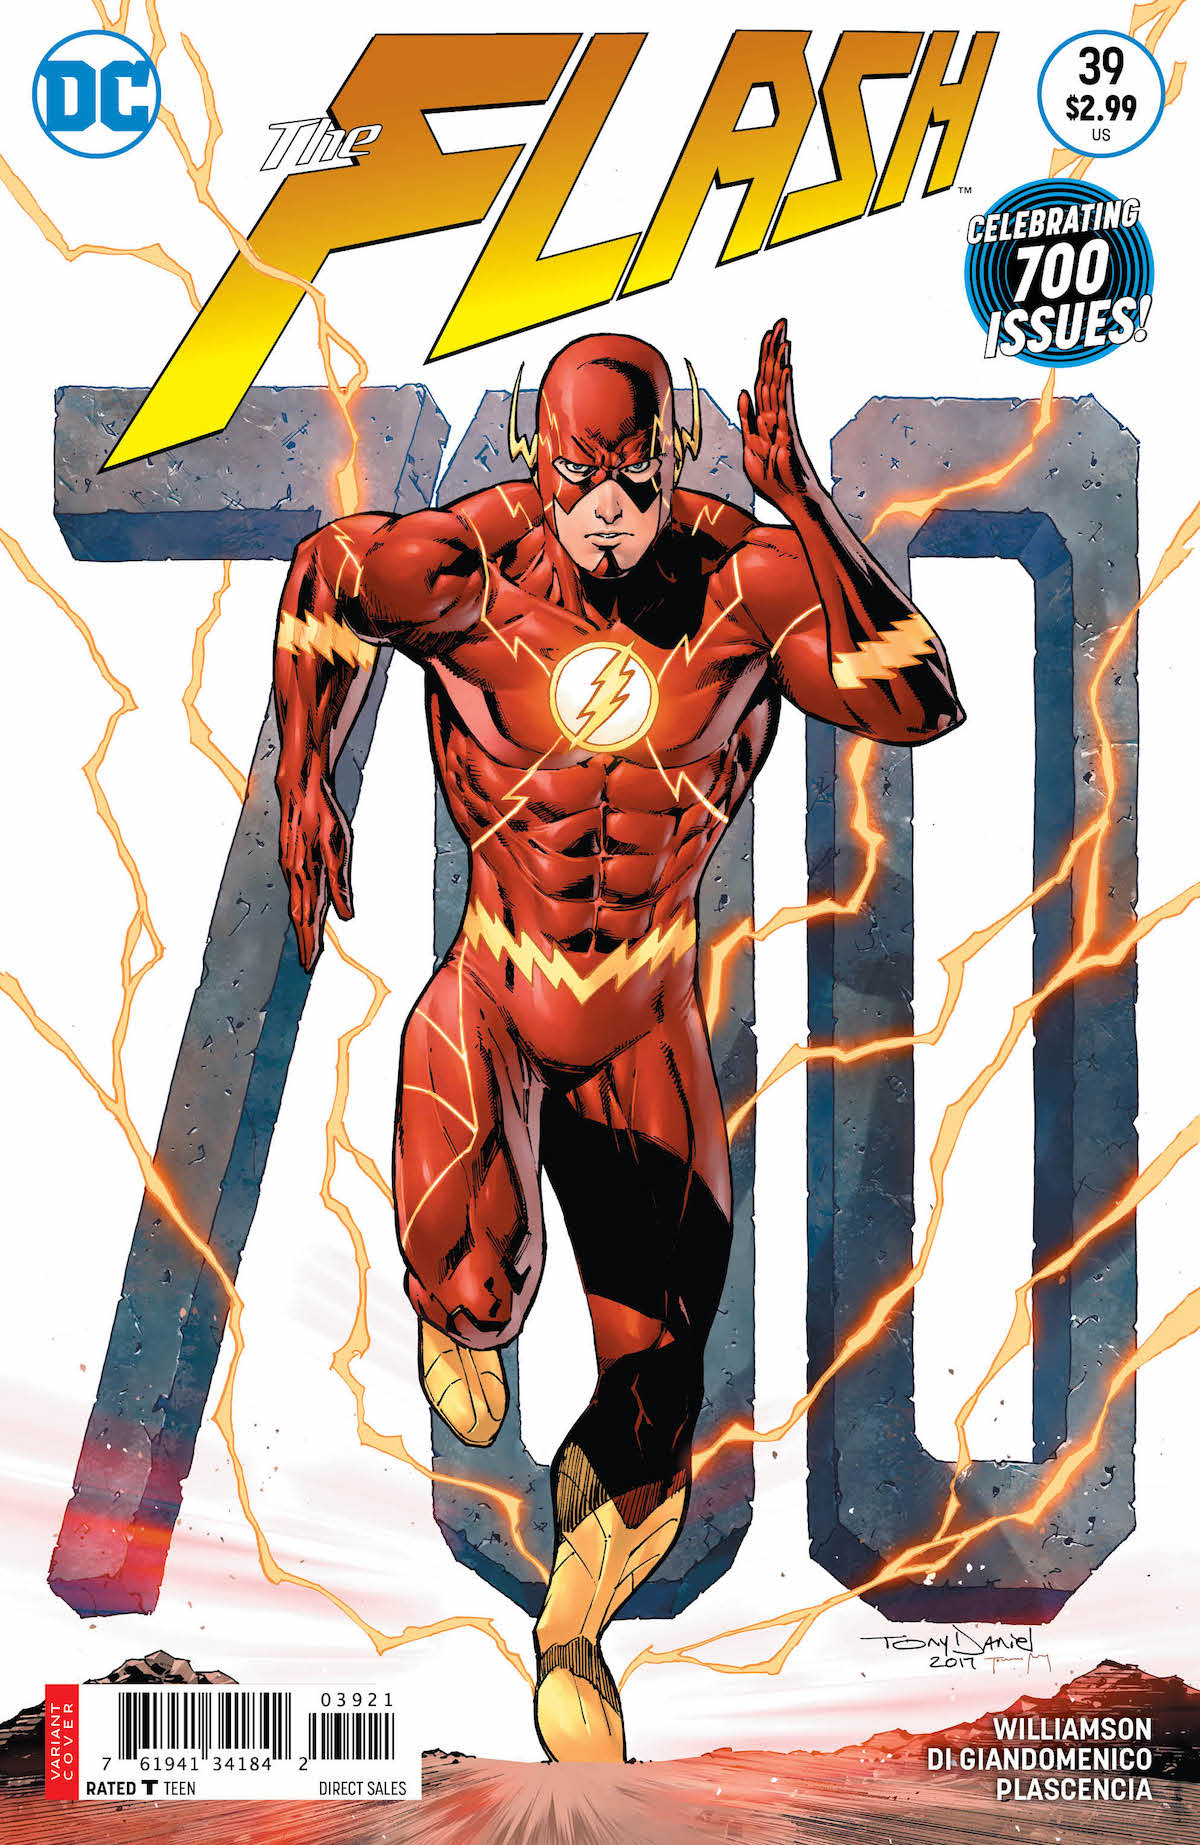 Flash #39 variant cover with 700